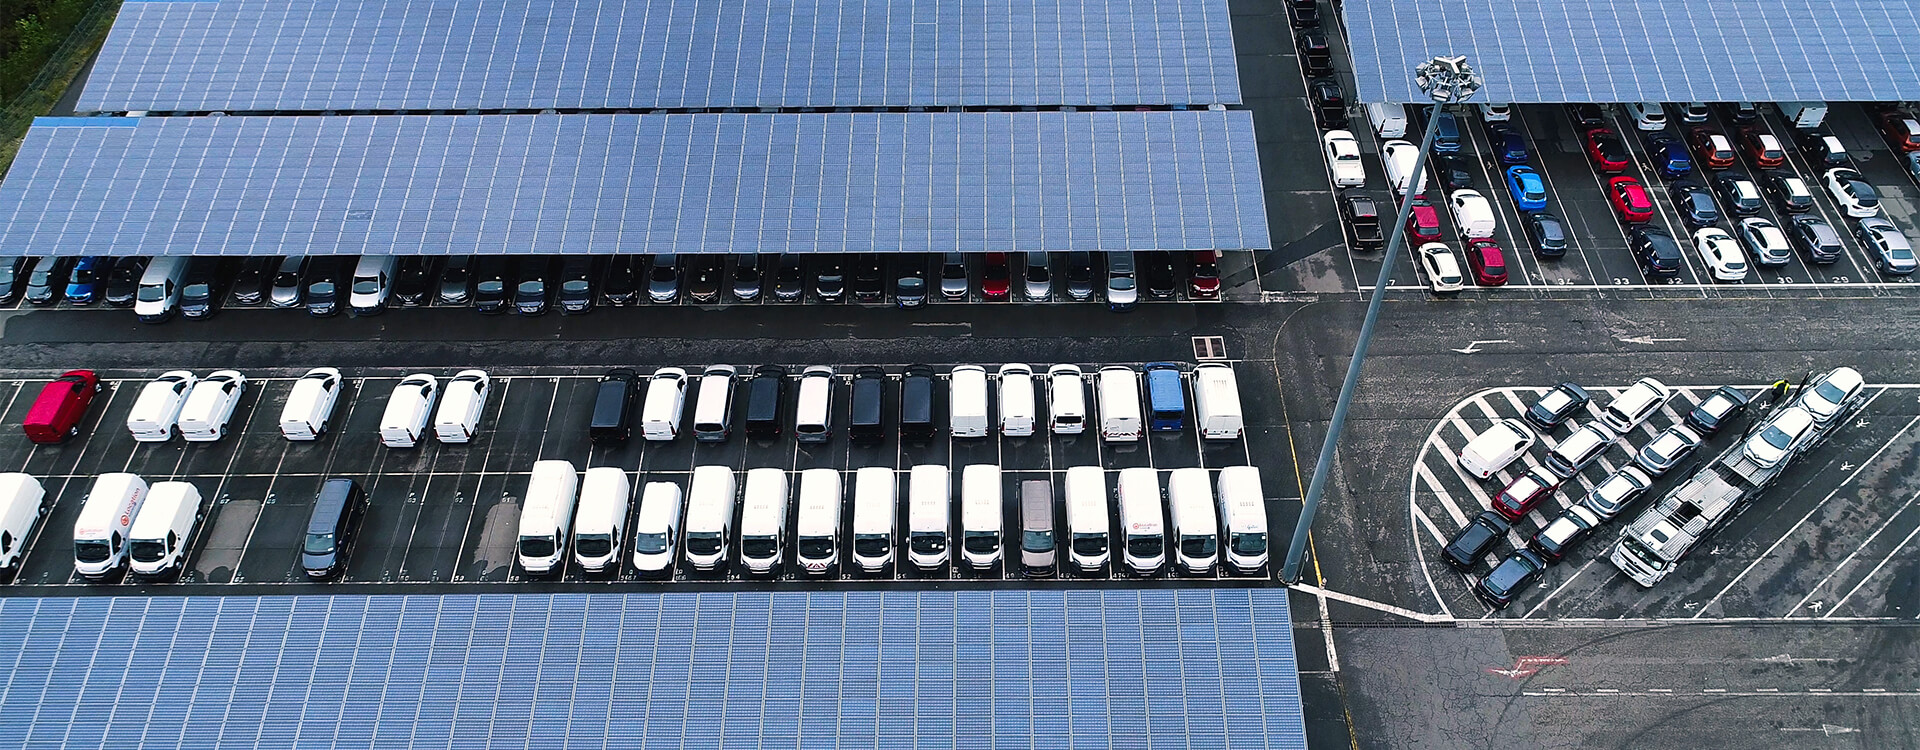 Karpot Technical Considerations For Solar Carports In A New Distributed Electrical System | Wsp